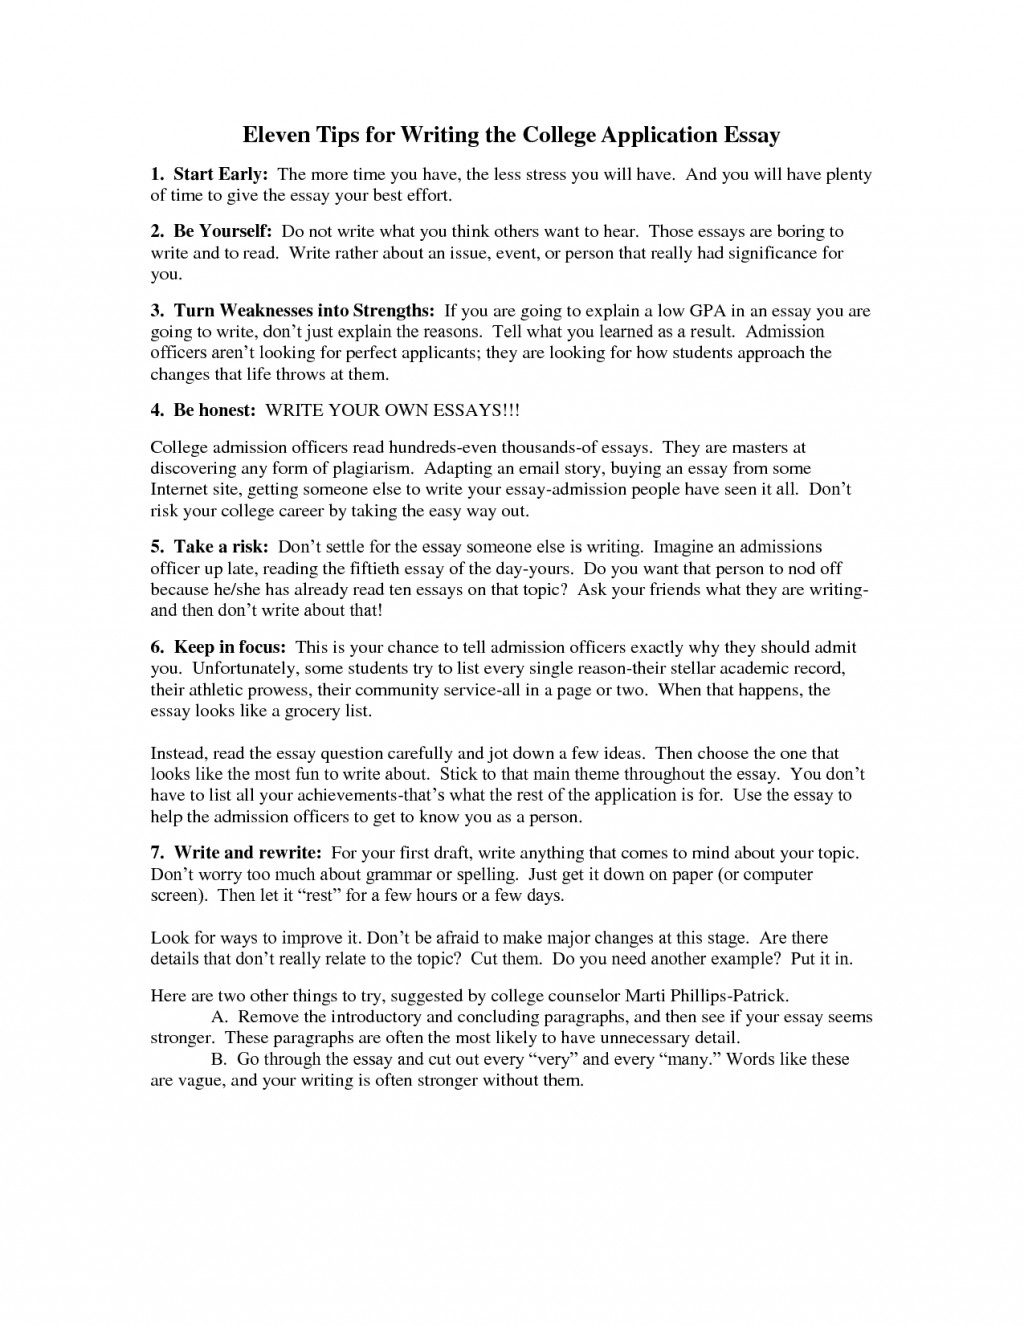 015 Tips For Writing College Application Essays Essay Example Fantastic Best Large